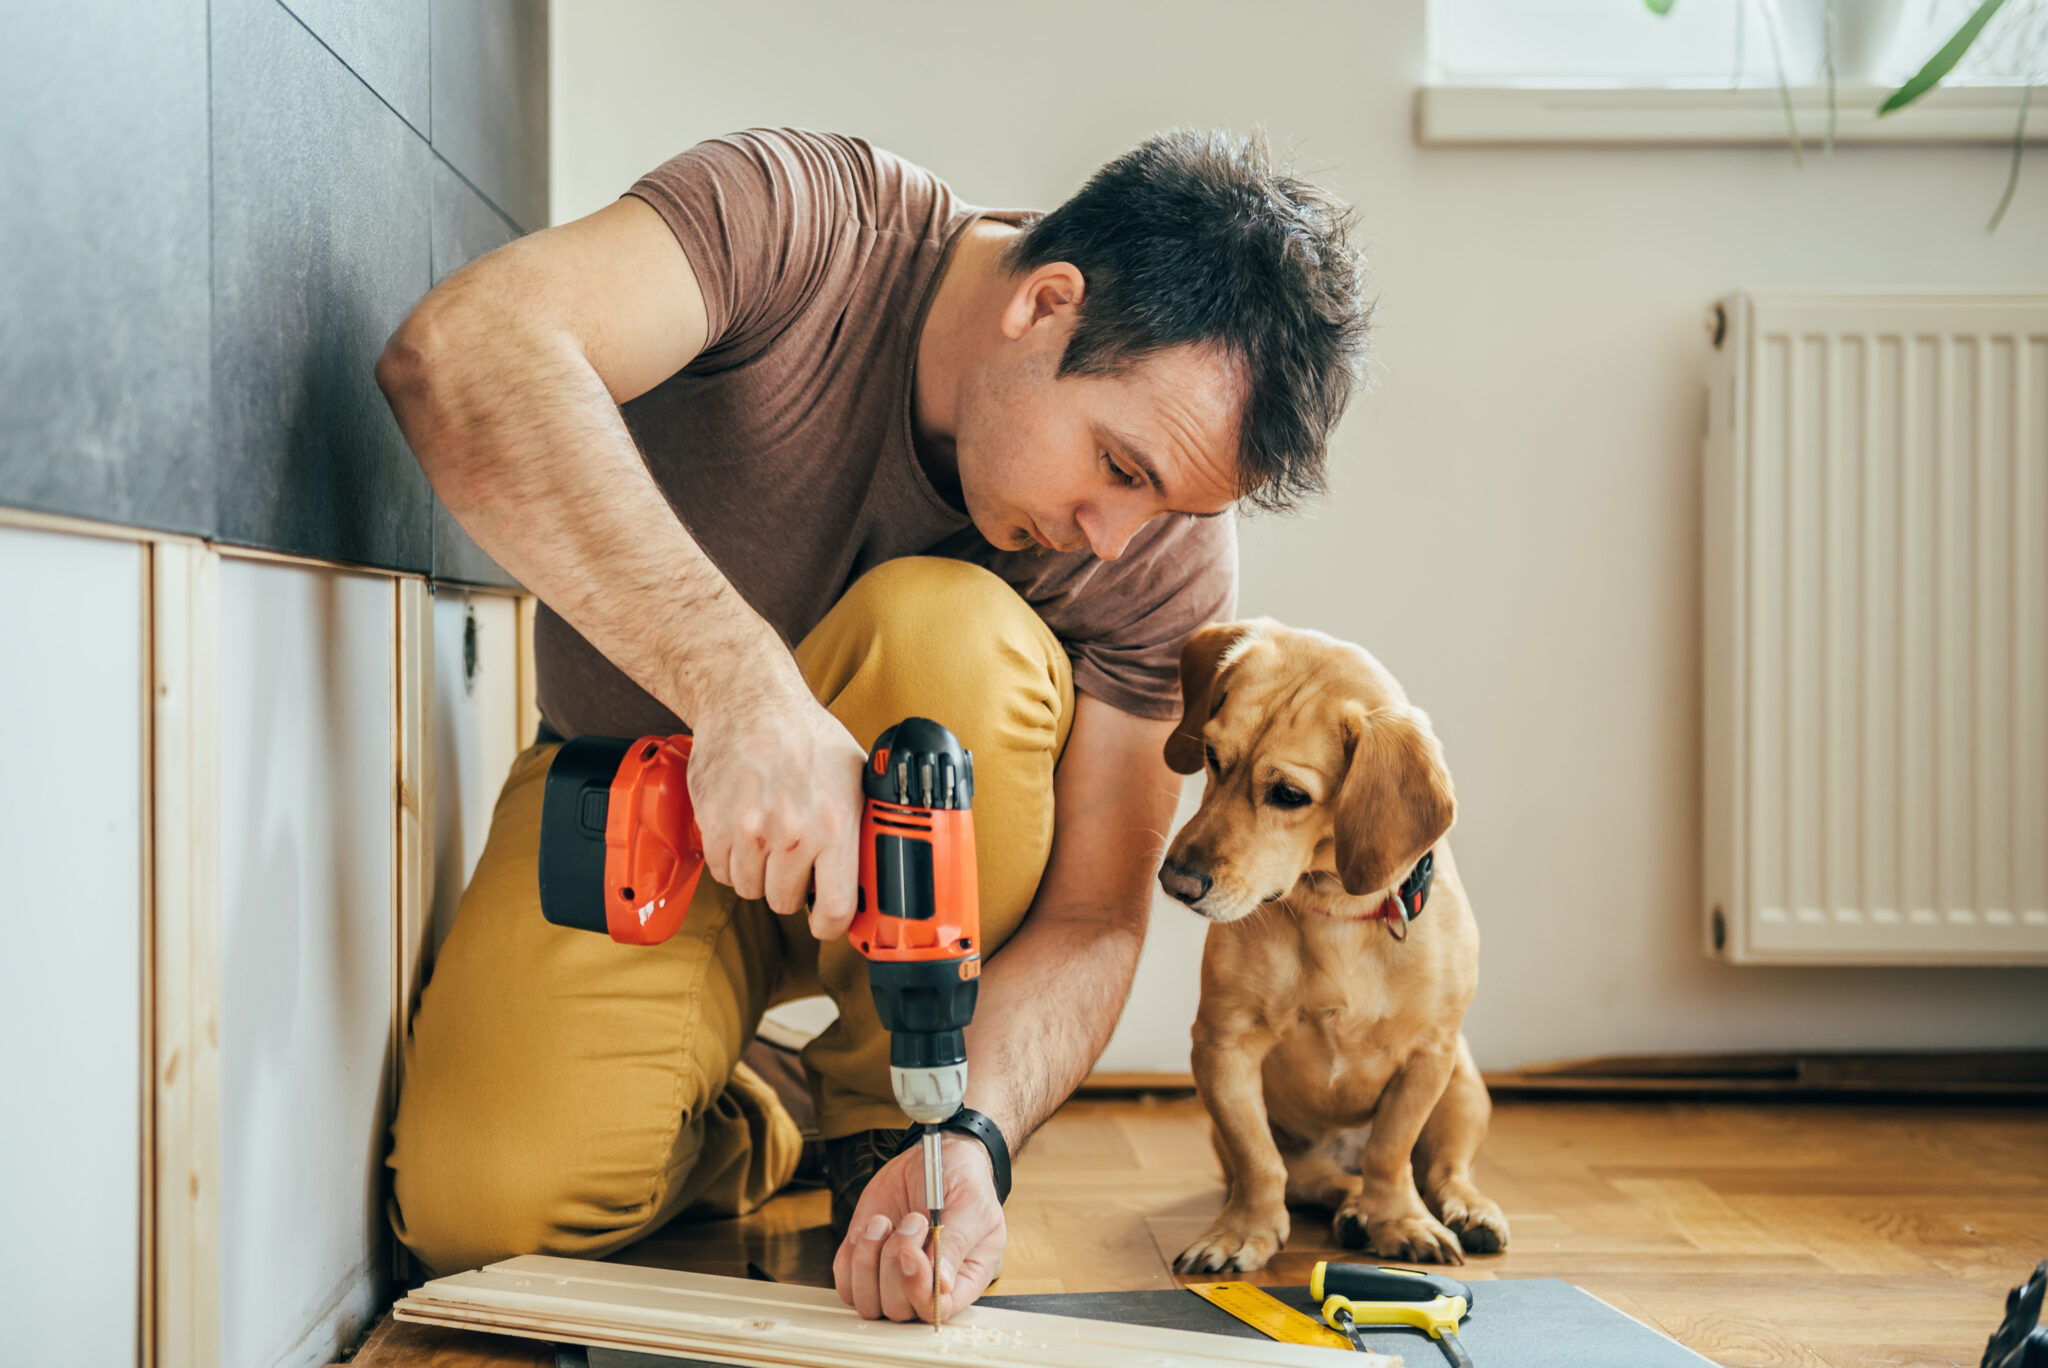 Man and dog home improvements